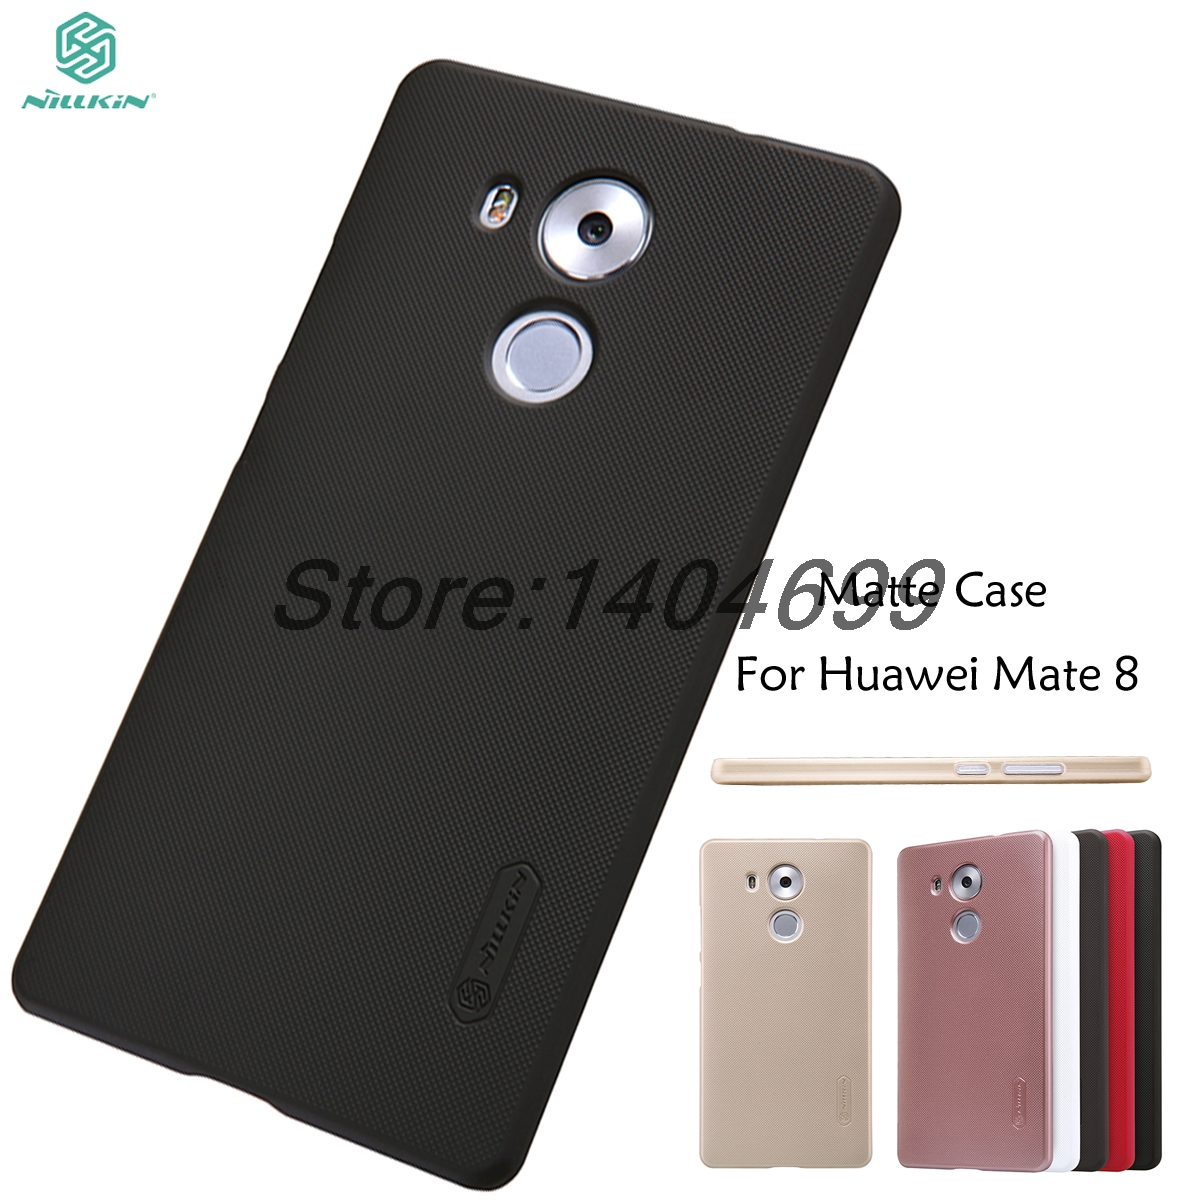 Huawei Mate 8 Case Nillkin Frosted Shield Hard Armor Back Cover Matte Case For Huawei Ascend Mate 8